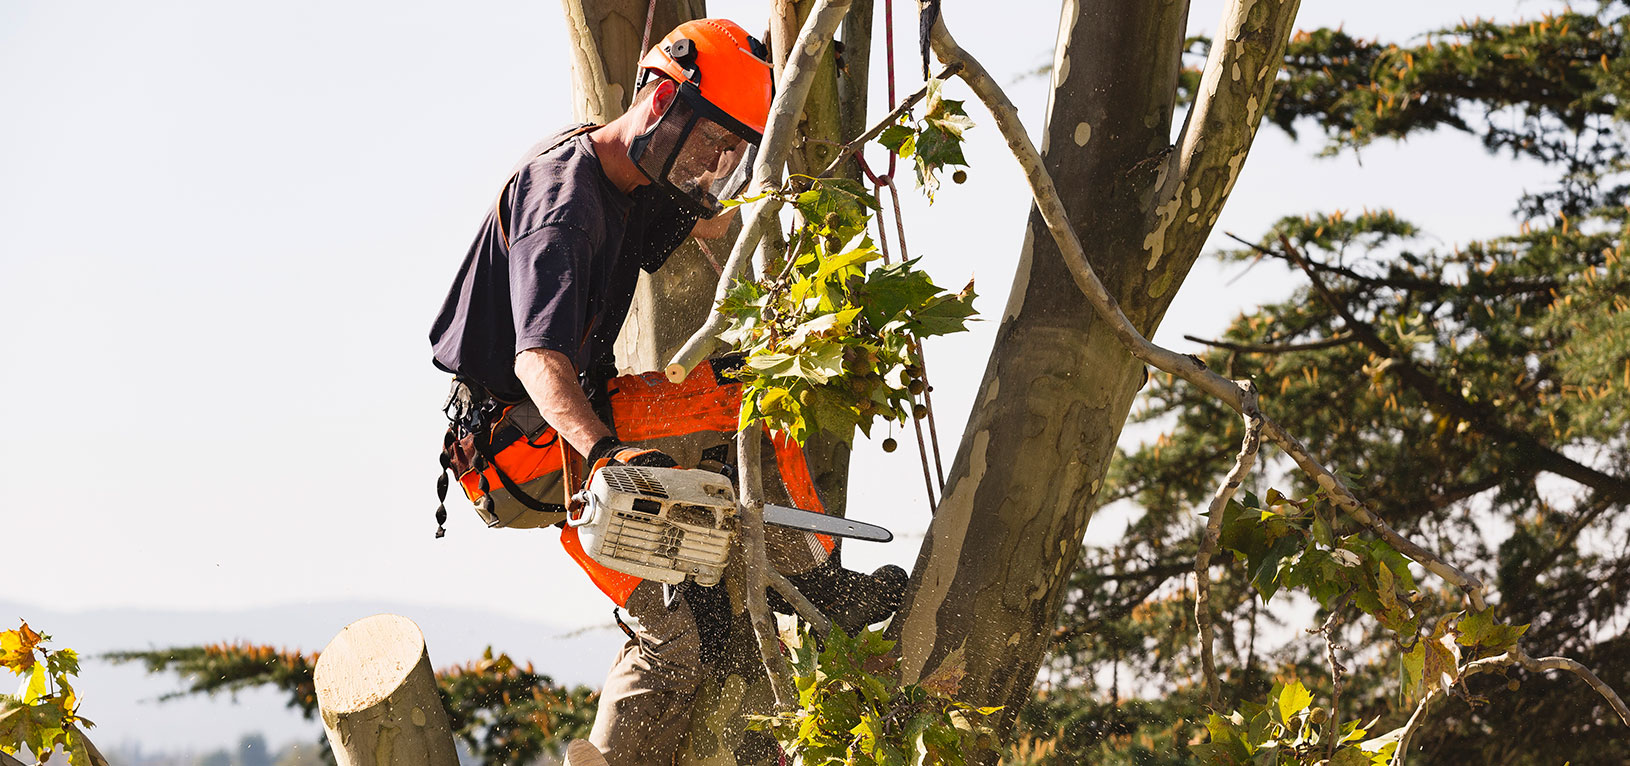 Boca Raton Tree Removal, Tree Trimming and Stump Grinding